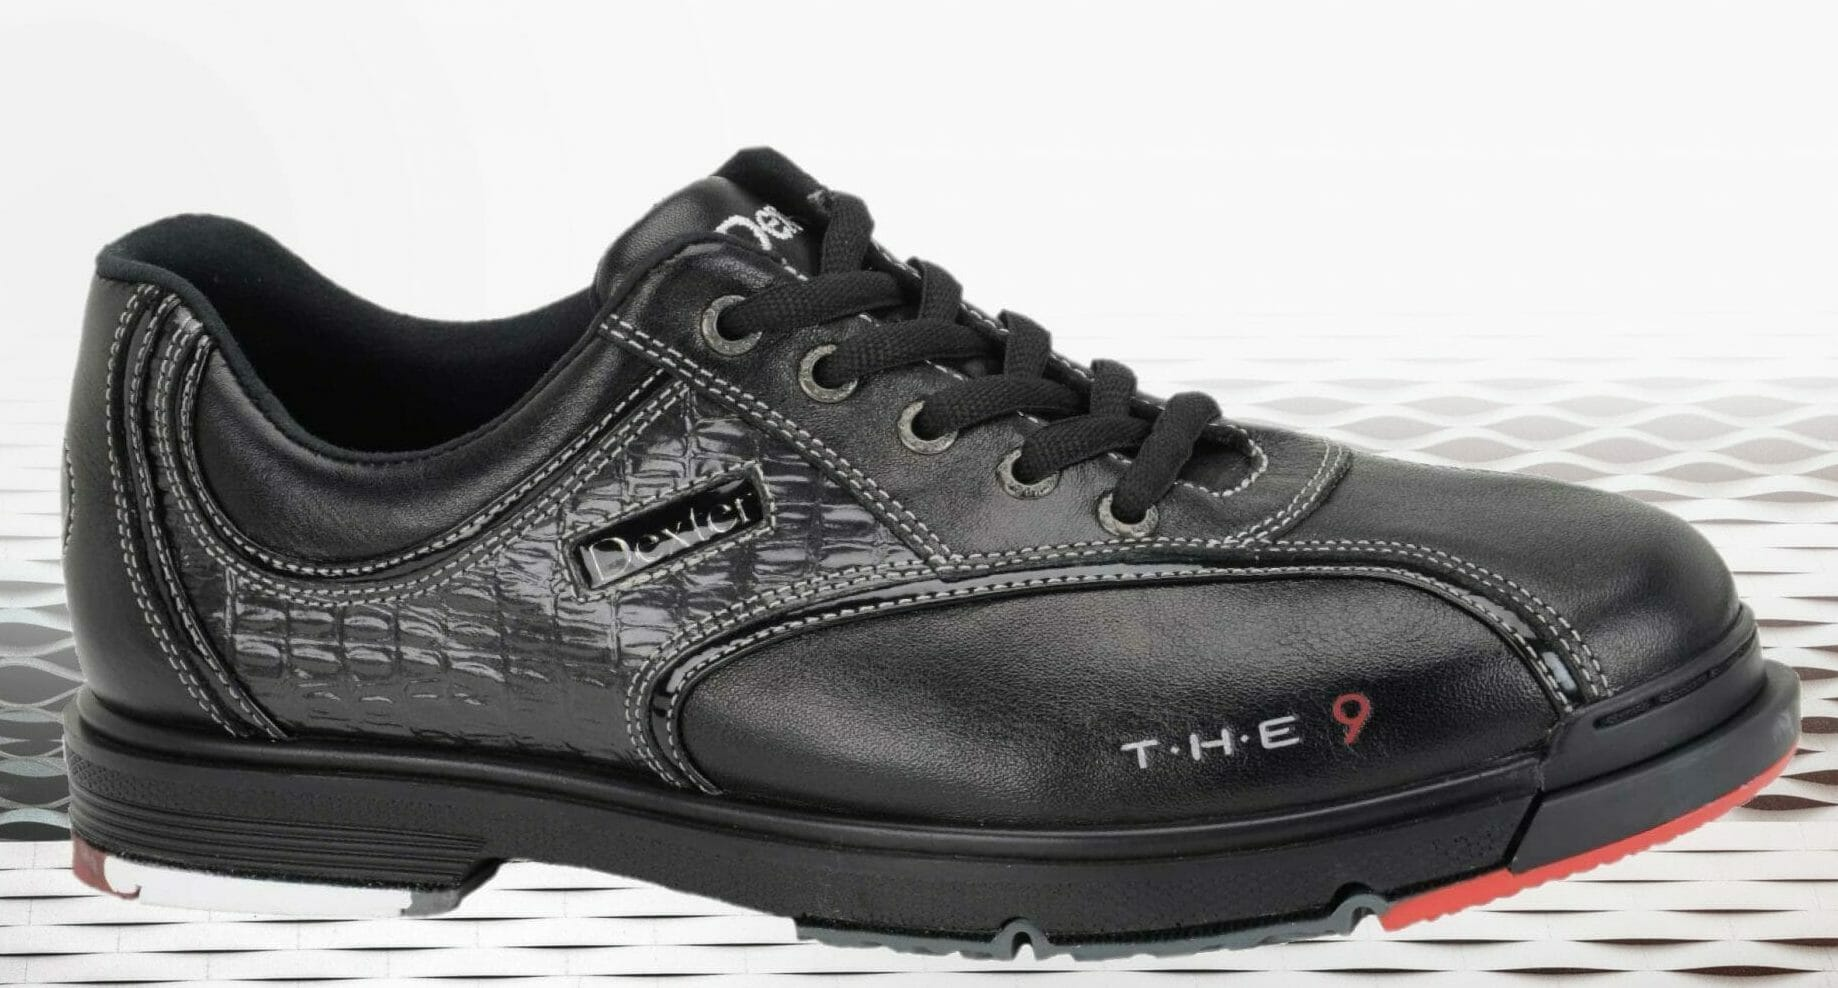 Profile view of the Dexter T.H.E. 9 Bowling Shoe for Women and Men